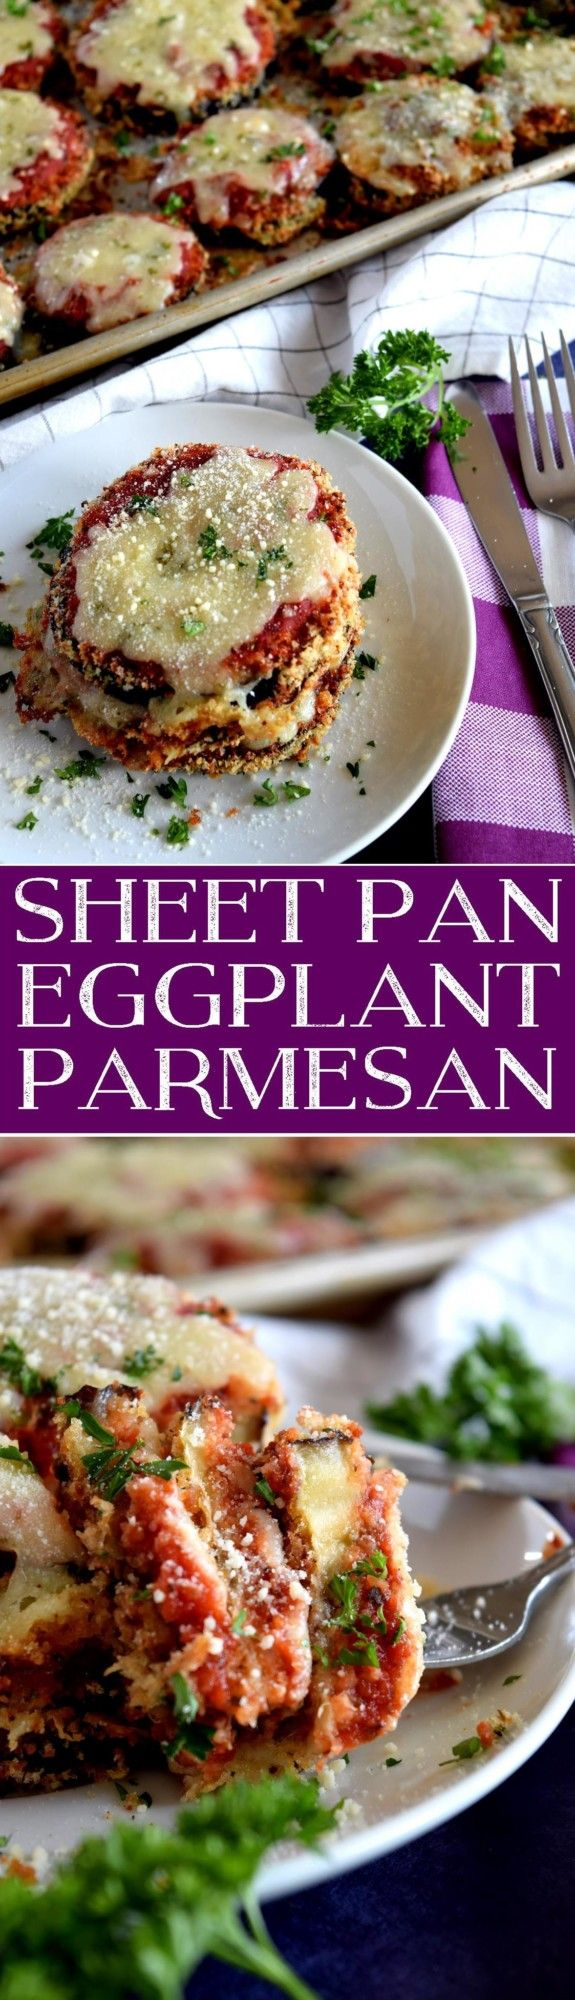 Sheet Pan Eggplant Parmesan - Lord Byron's Kitchen